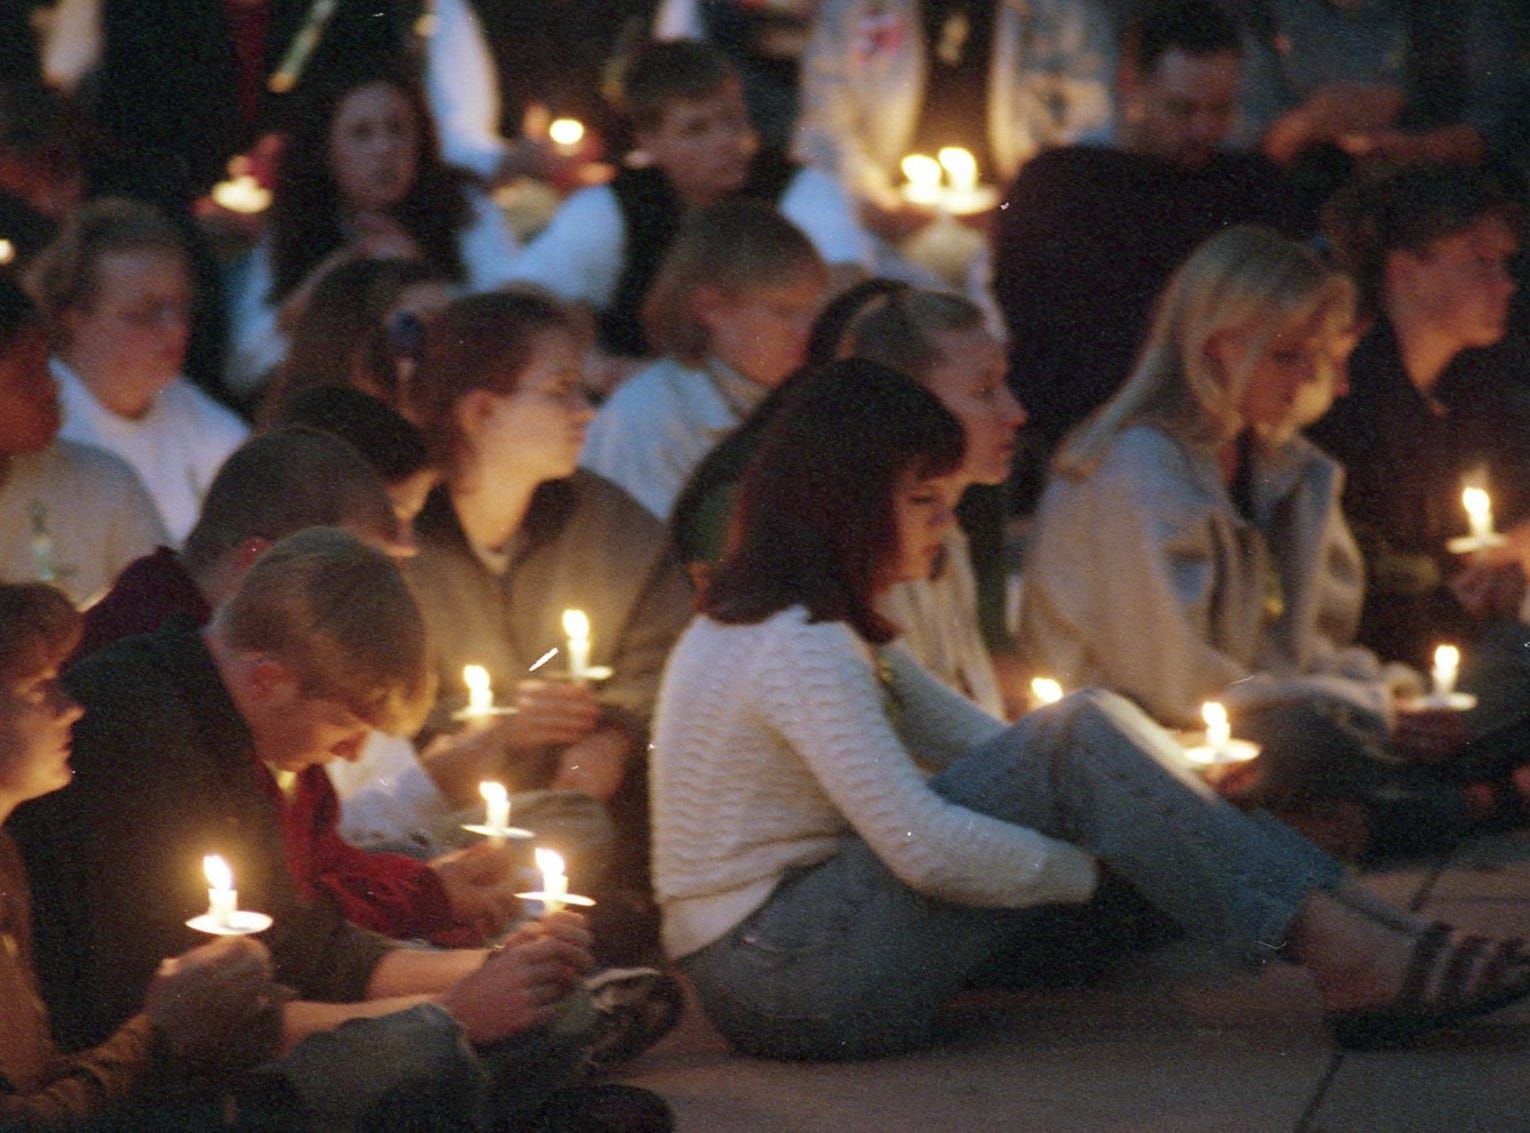 Colorado State University students gather on Tuesday, October 13 for a candlelight vigil for University of Wyoming student Matthew Shepard. Shepard died the previous morning.